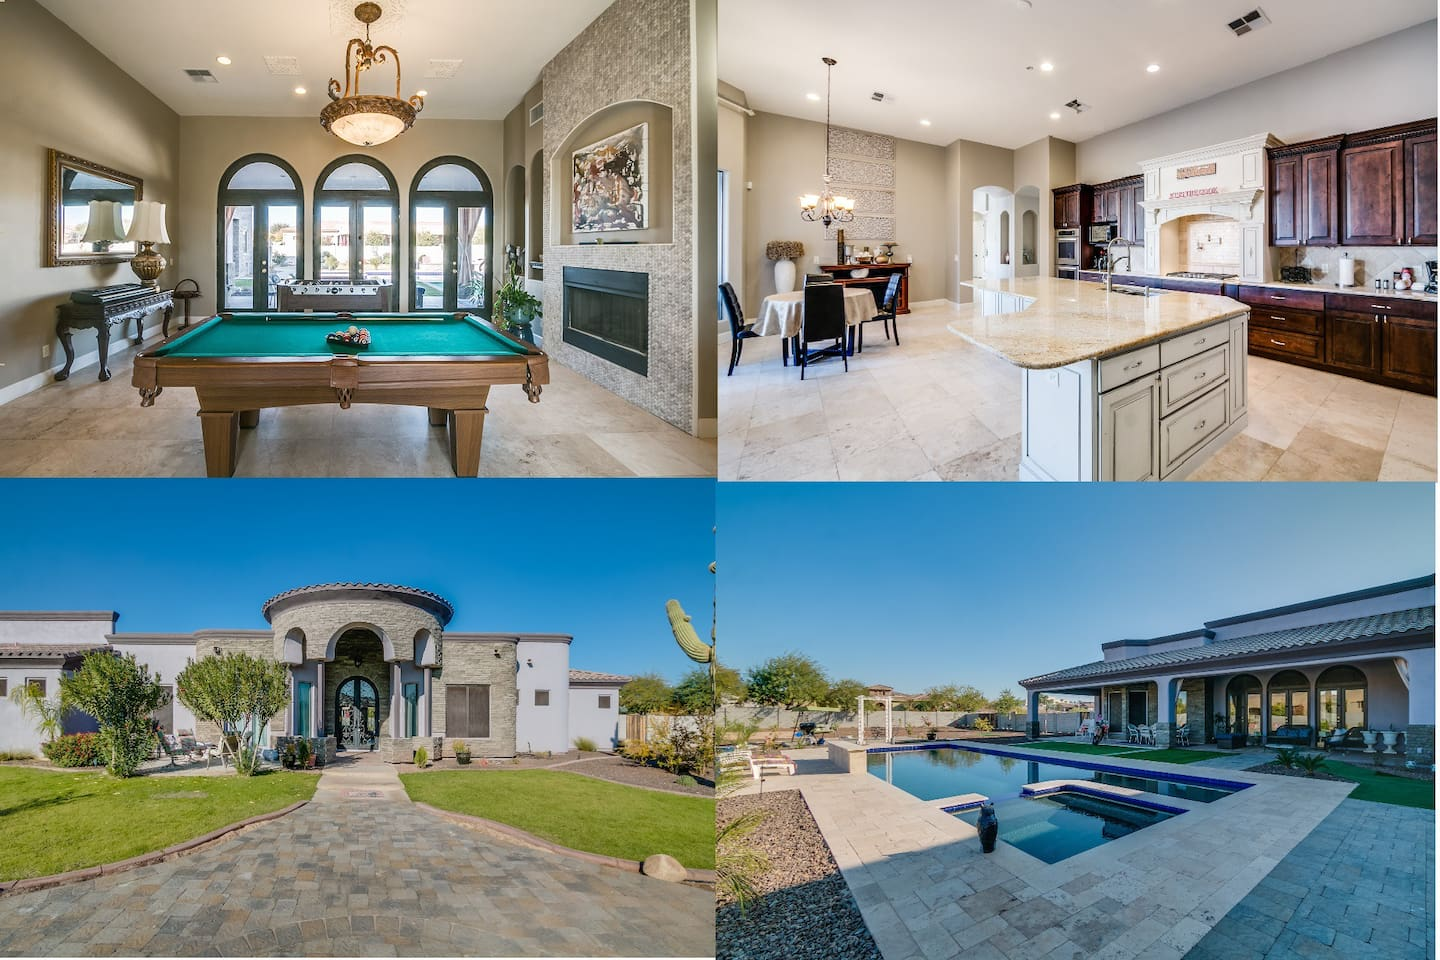 This picture shows 4 area of the house which big pool, backyard patio, game area showing pool foos table and huge kitchen. Main entrance is also shown here.